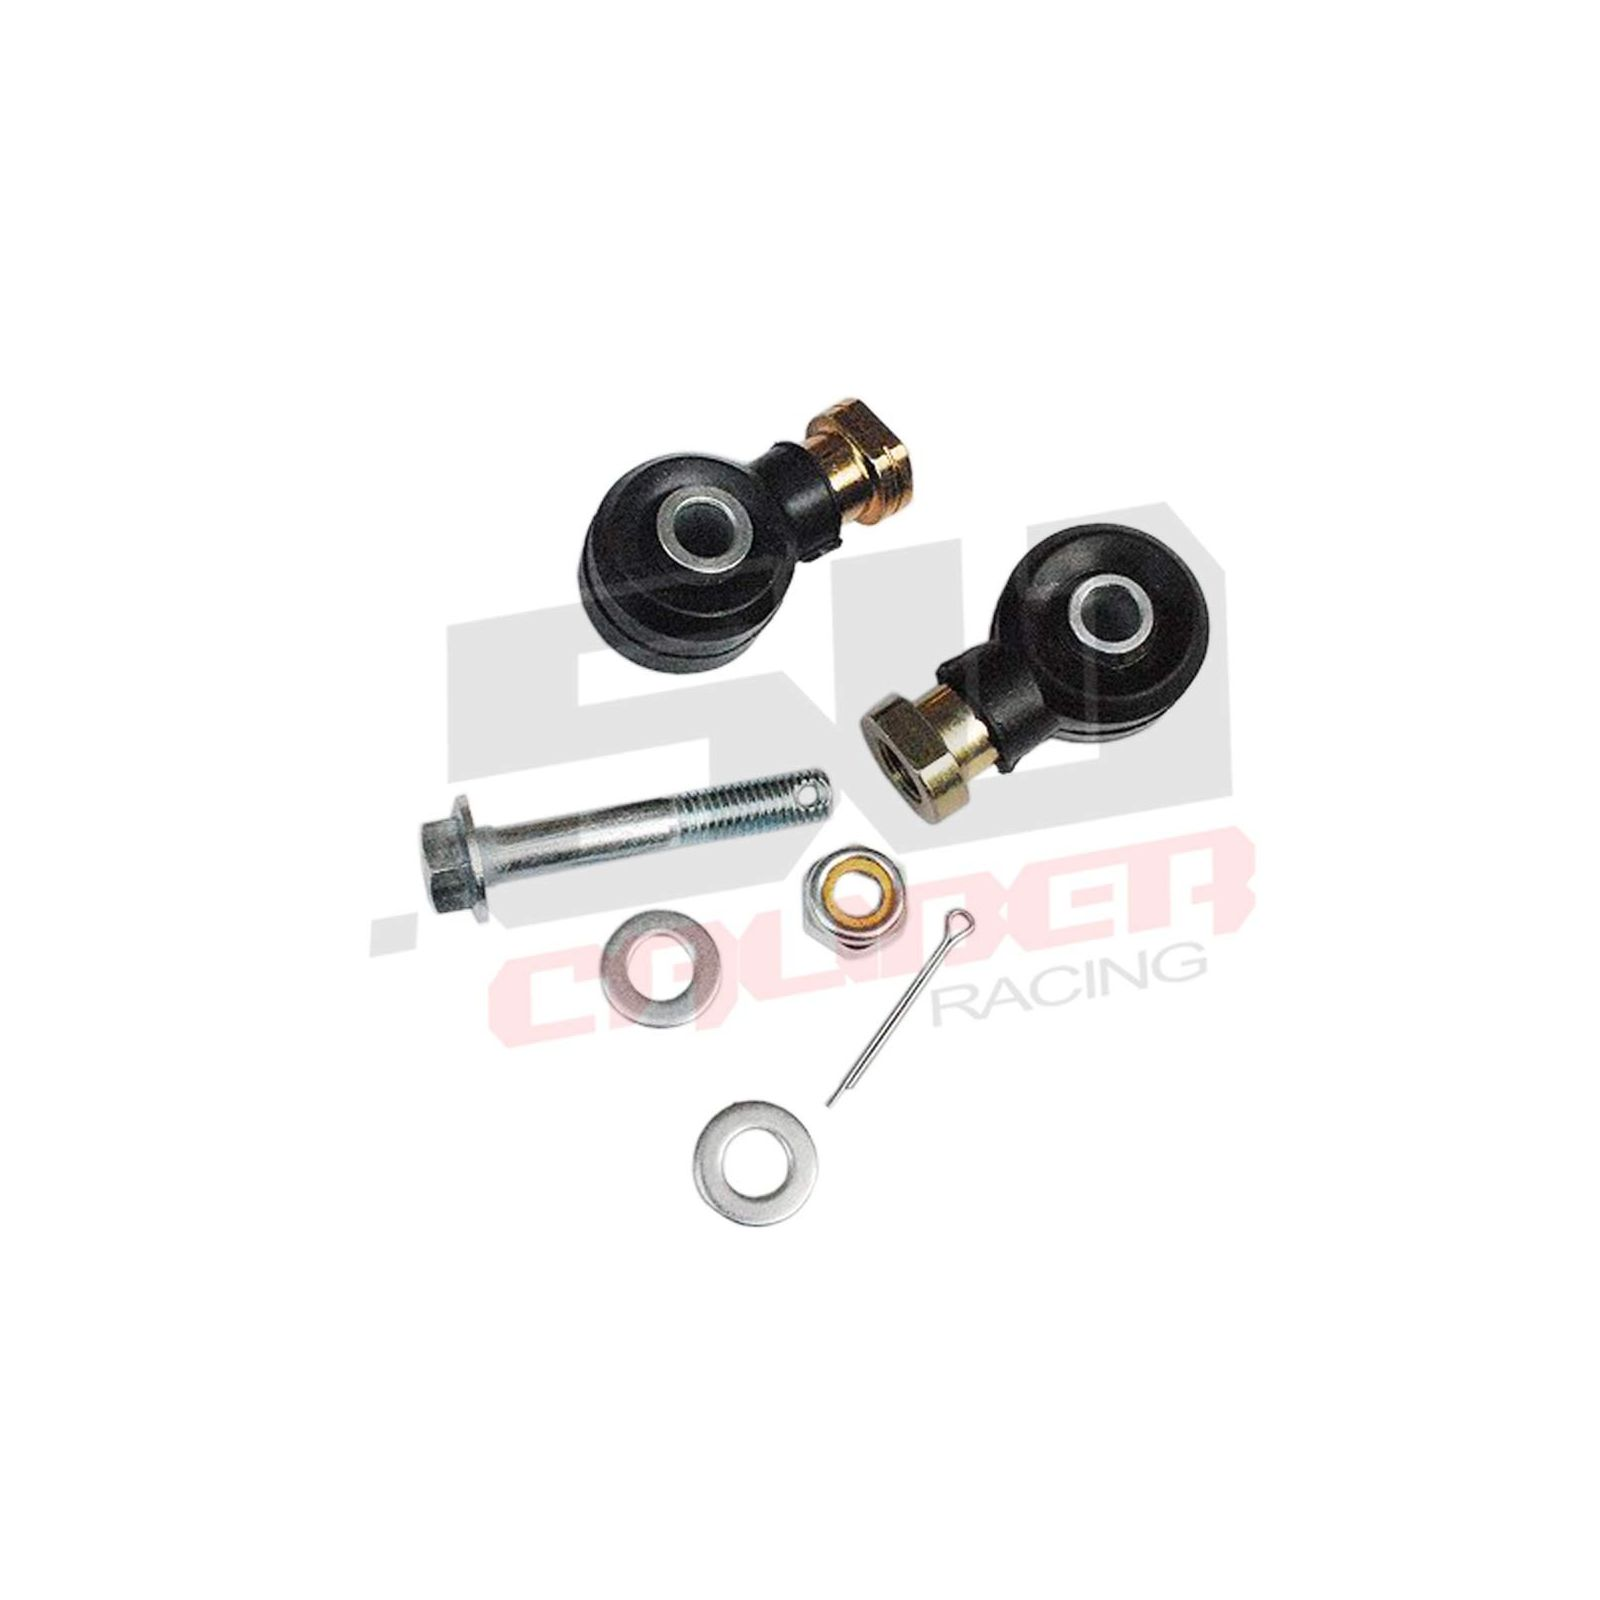 Polaris 325 Trail Boss Inner and Outer Tie Rod Ends 1 Side